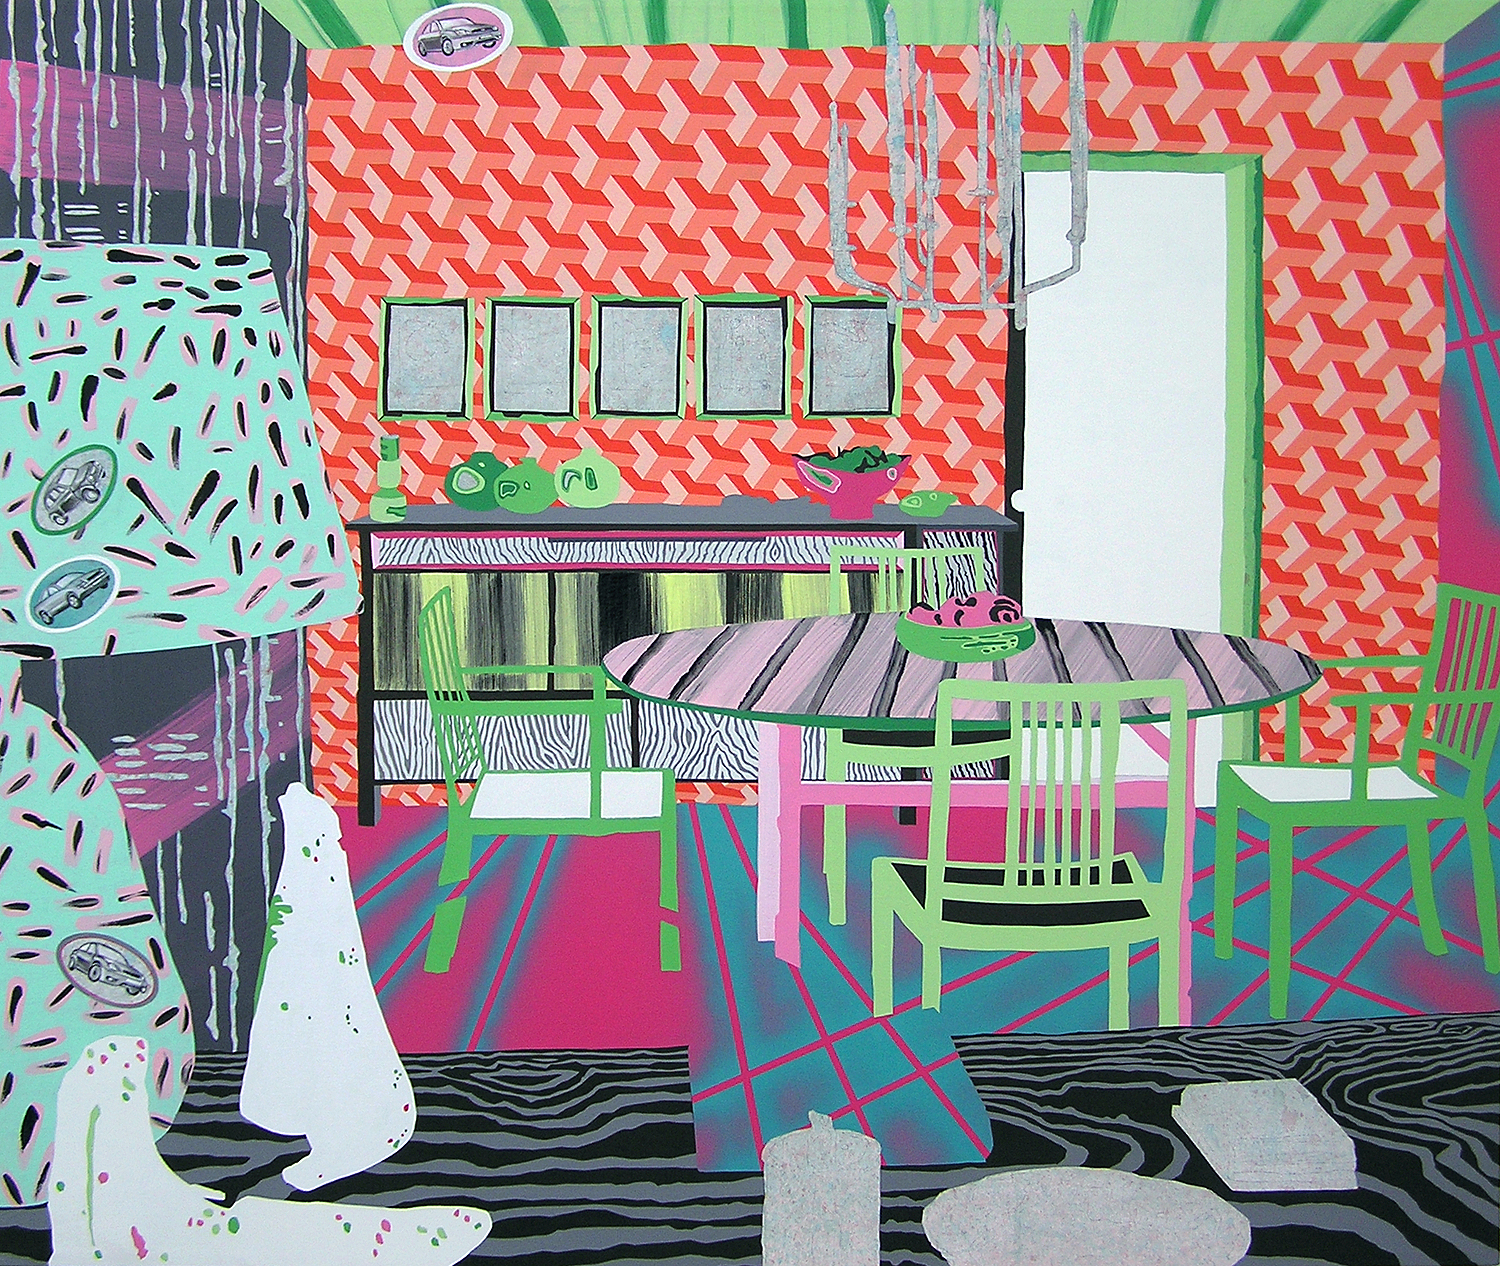 "The Modern way with Color Contains Clashes as well as Harmonies #3    Flashe and oil paint on canvas  36x48"", 2009"